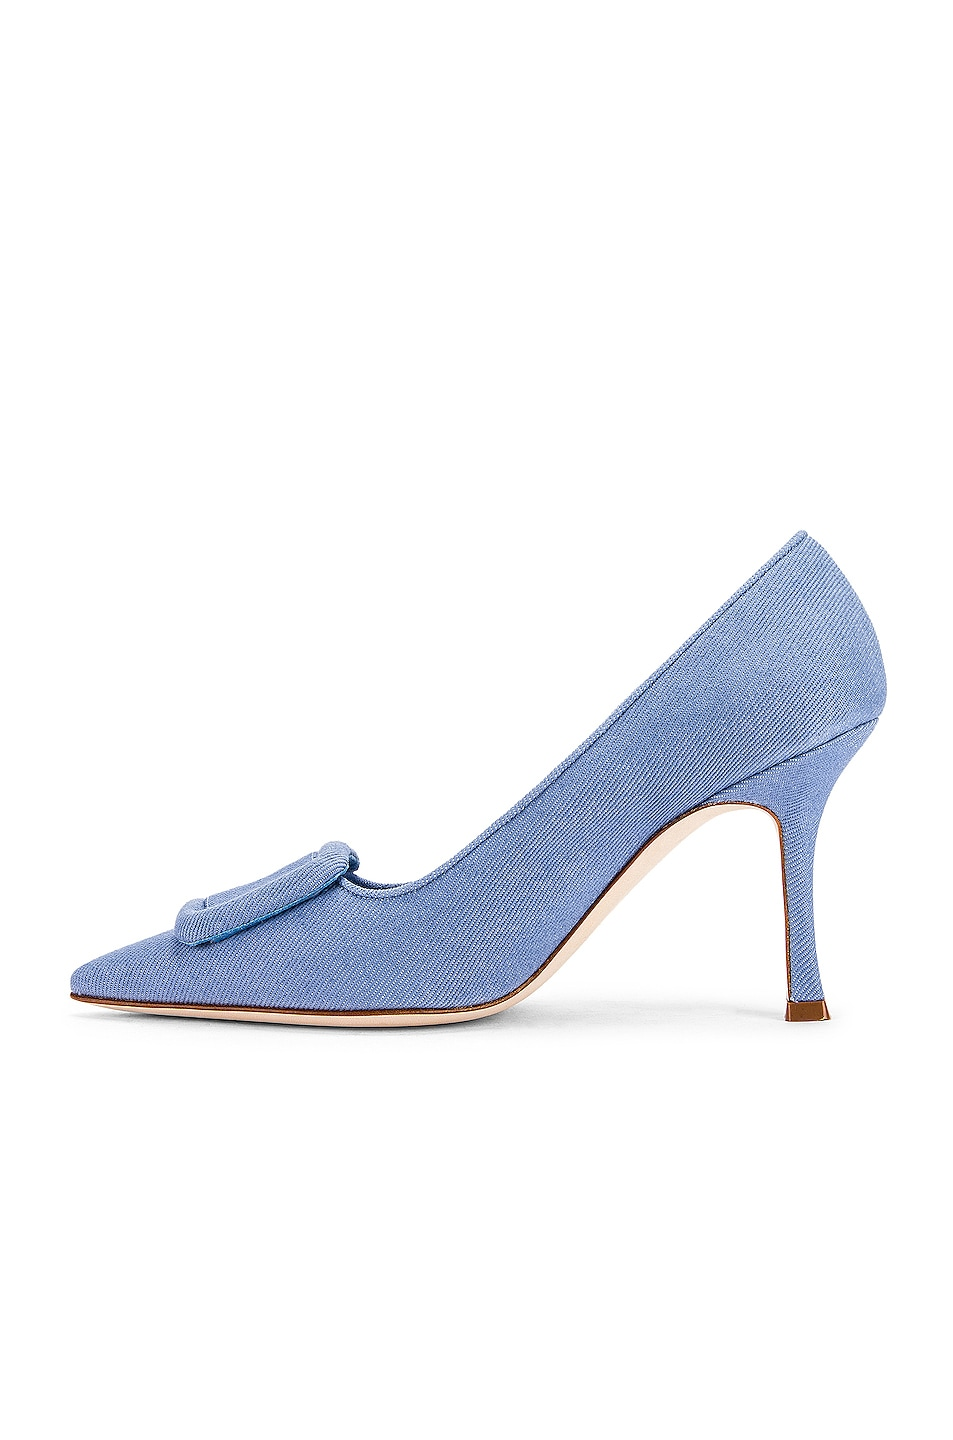 Image 5 of Manolo Blahnik Maysale 90 Pump in Light Blue Jean